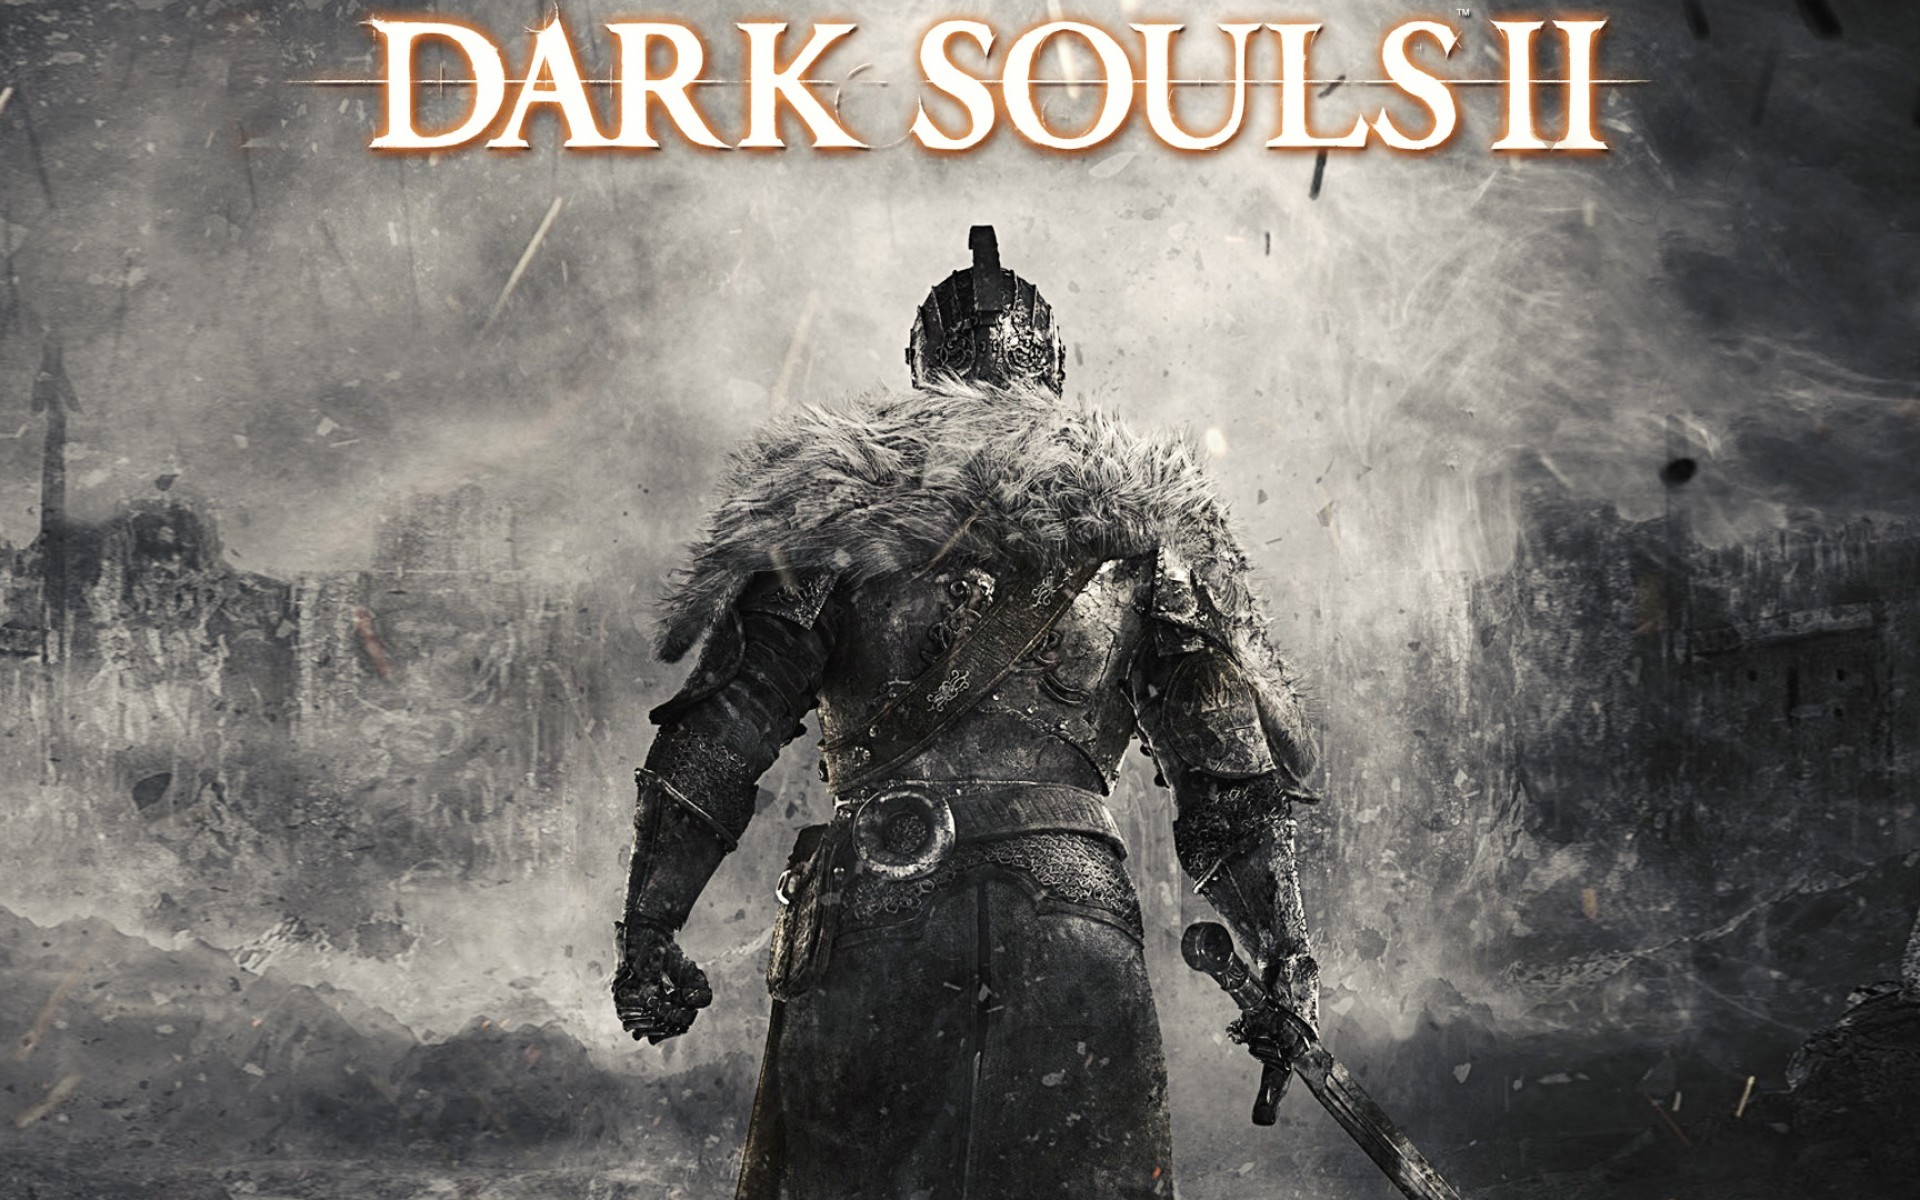 Dark Souls II trailer